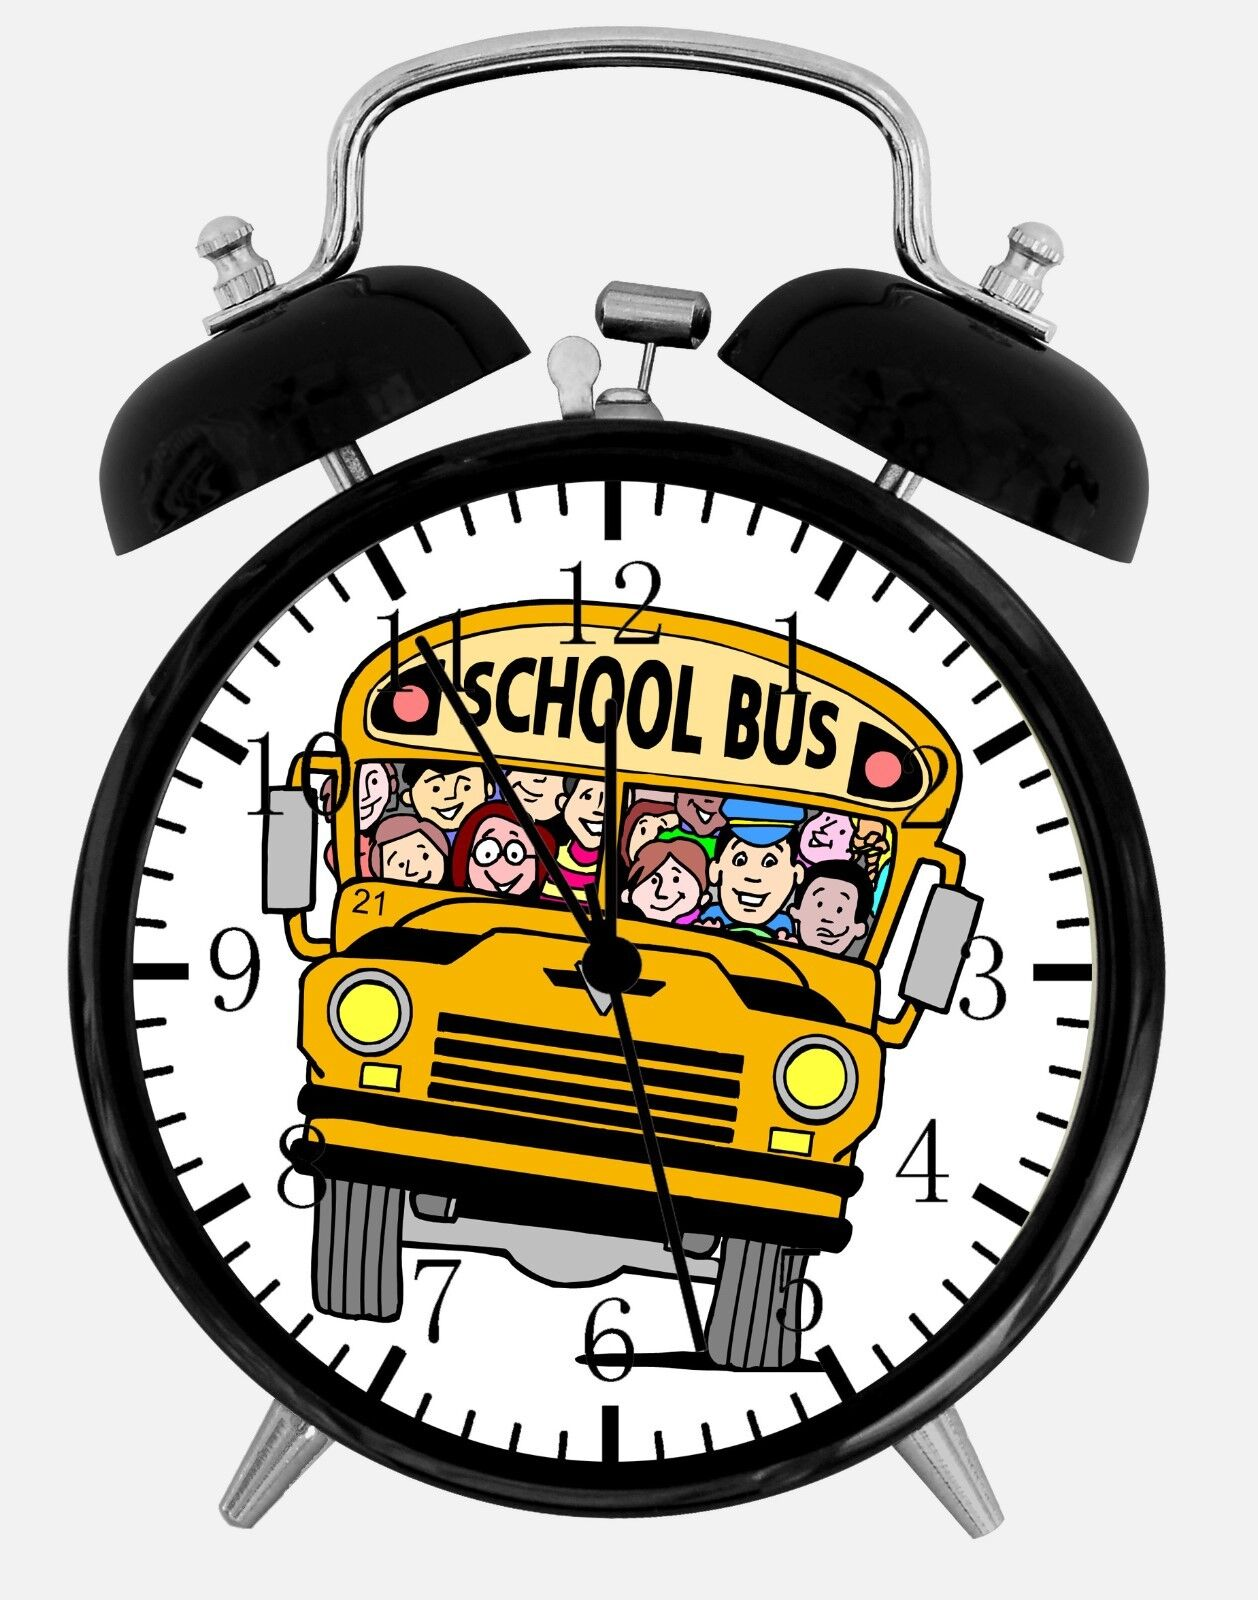 "School Bus Alarm Desk Clock 3.75"" Home or Office Decor W203 Nice For Gift"